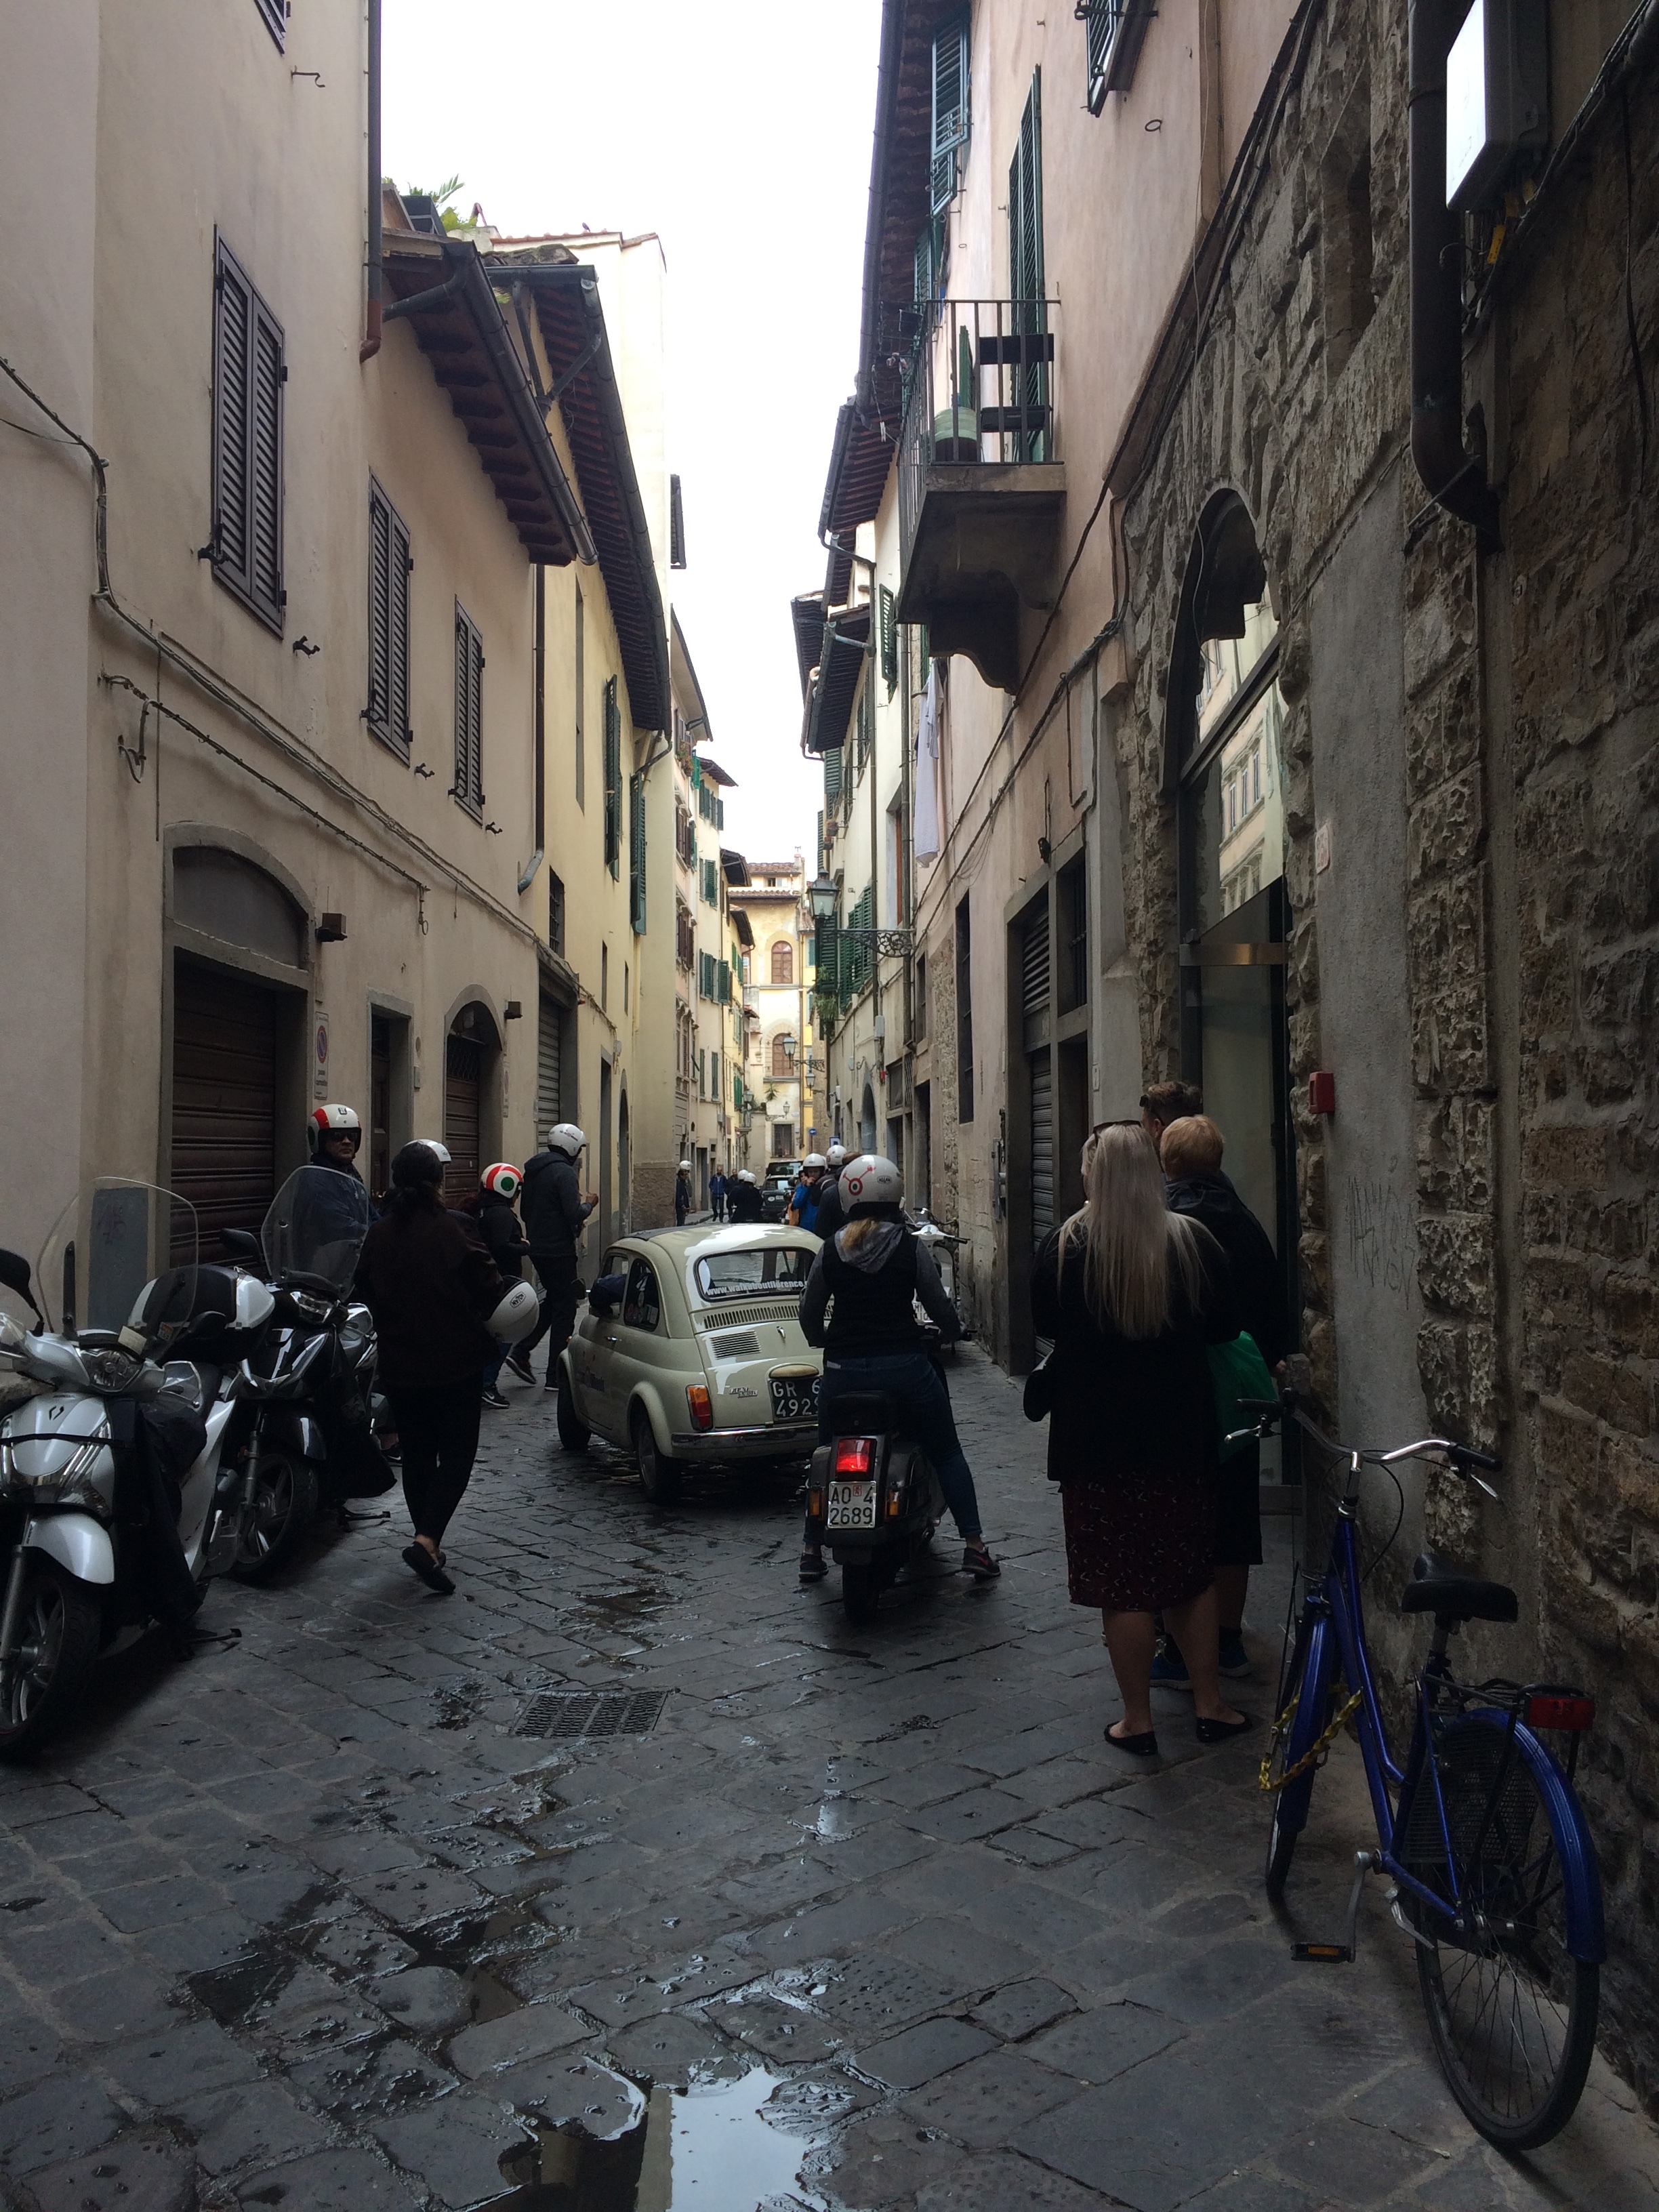 Follow the leader - a classic Fiat Cinquecento leads the way on this Florence Vespa tour for tourists